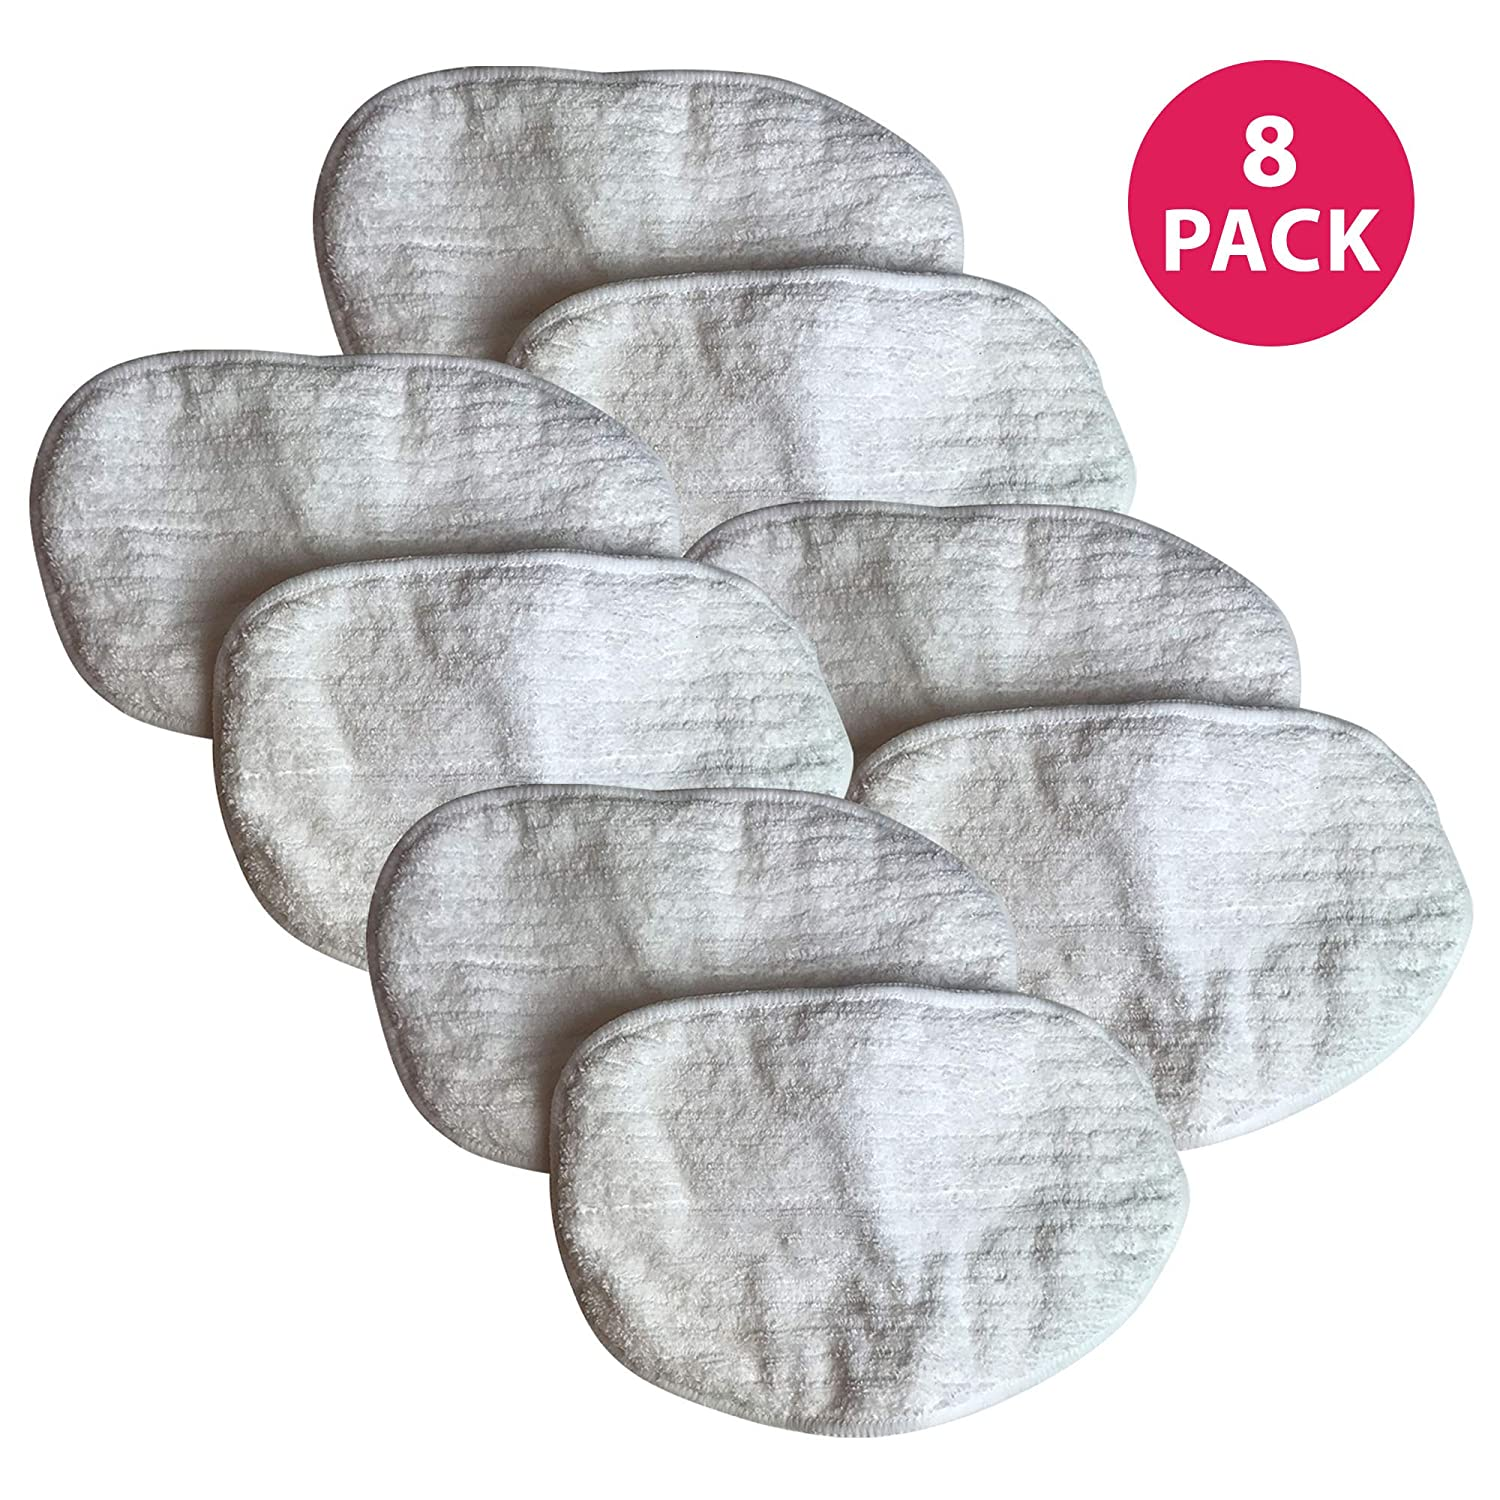 Think Crucial Replacement Mop Pads Compatible with Bissell Replacement Microfiber Steam Mop Pad Parts - Hardwood Mop Head Part - Parts 203-2158, 2032158, 3255, 32525 Model 1867 - Bulk (8 Pack)